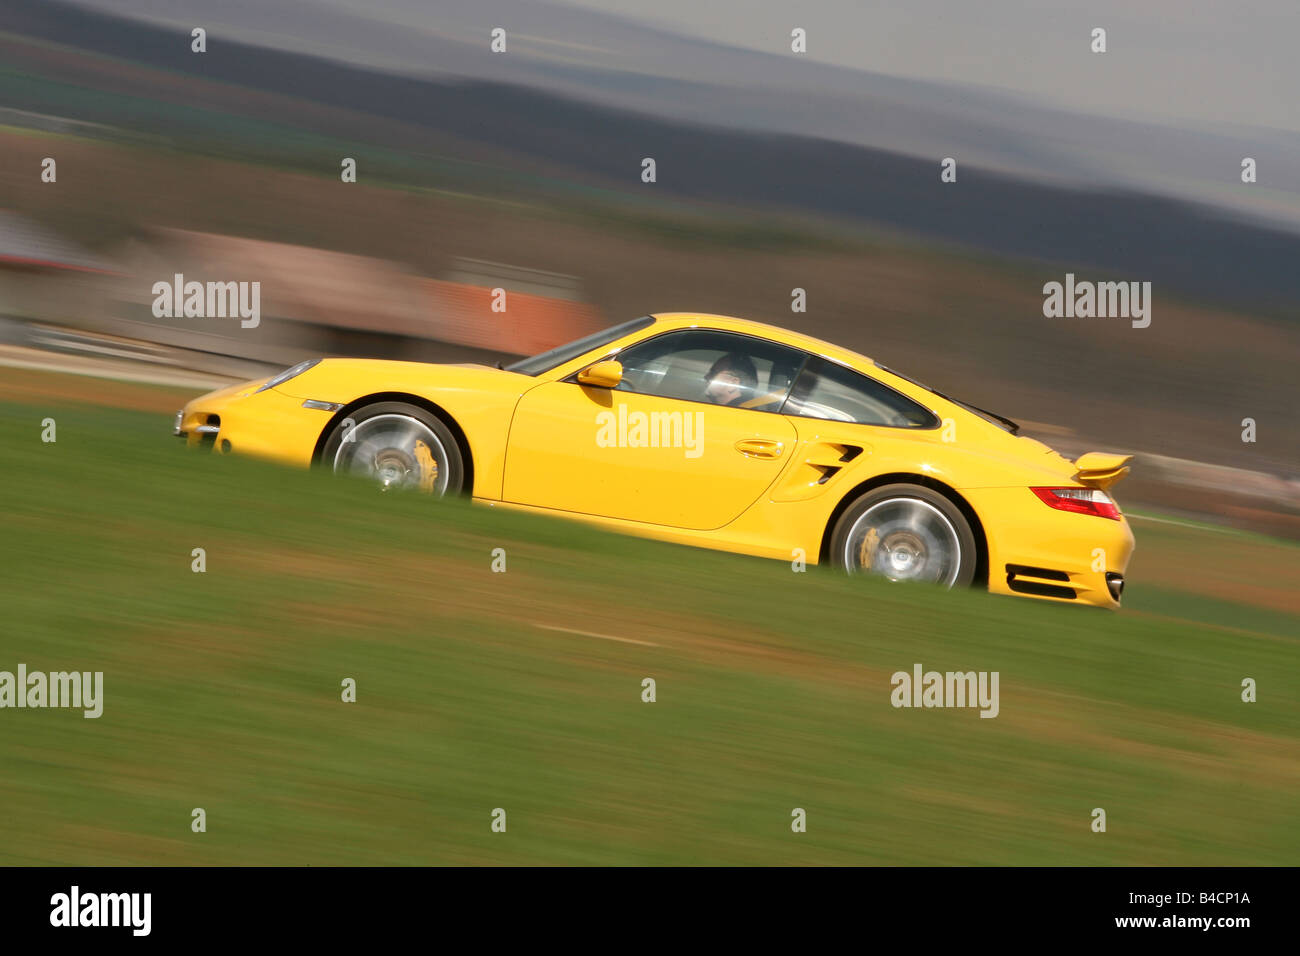 Porsche 911 turbo, model year 2006-, yellow, driving, side view, country road - Stock Image